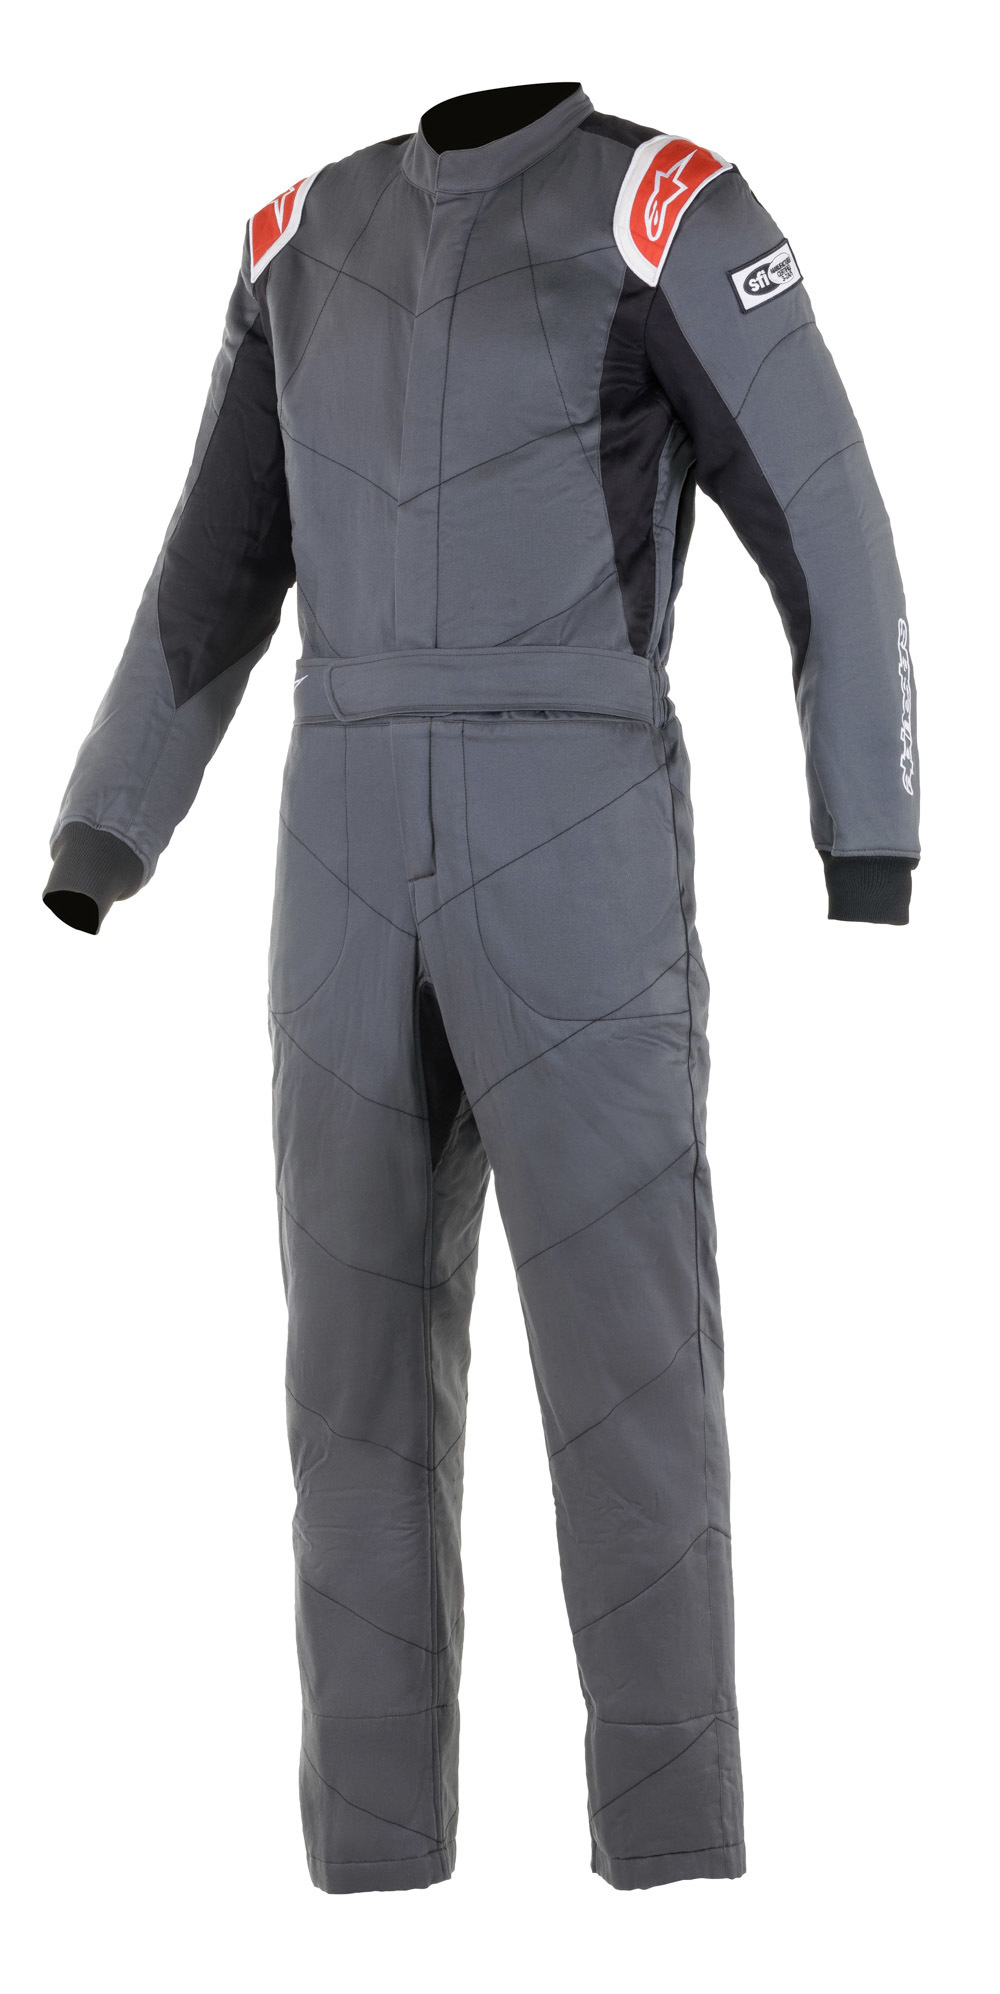 Alpinestars Usa Suit Knoxville V2 Grey / Red XX-Large / XXX-Large